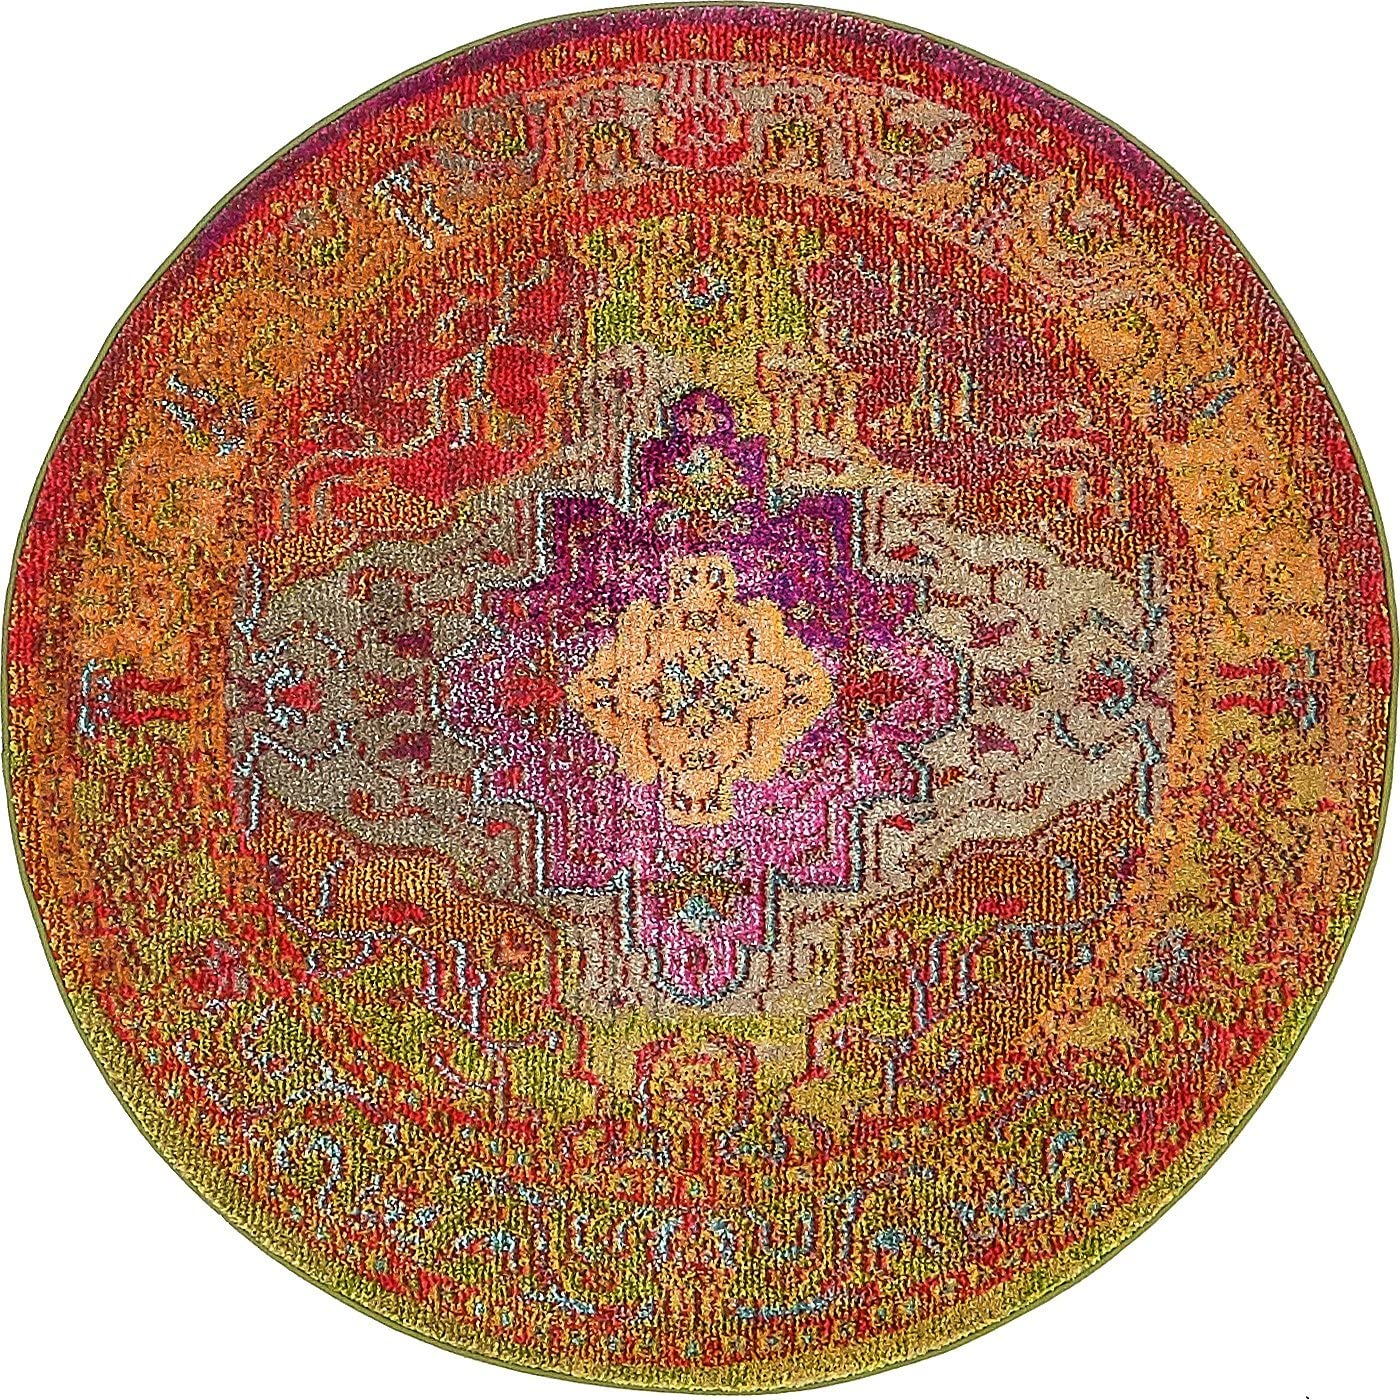 Unique Loom 3136269 Area Rug, 4 0 x 4 0 Round, Multi